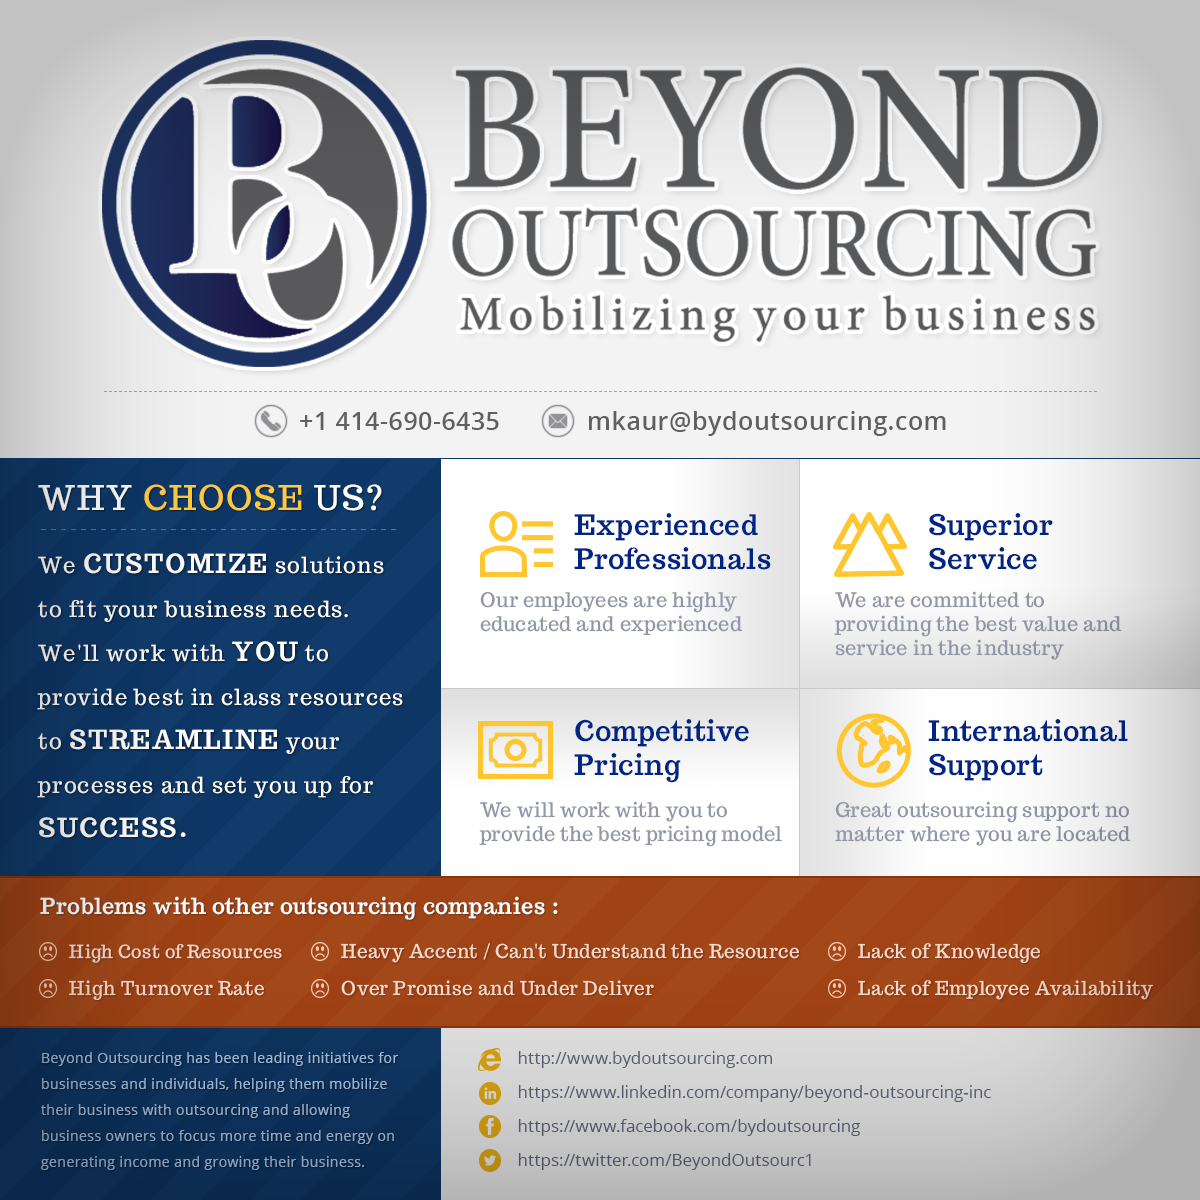 Beyond Outsourcing